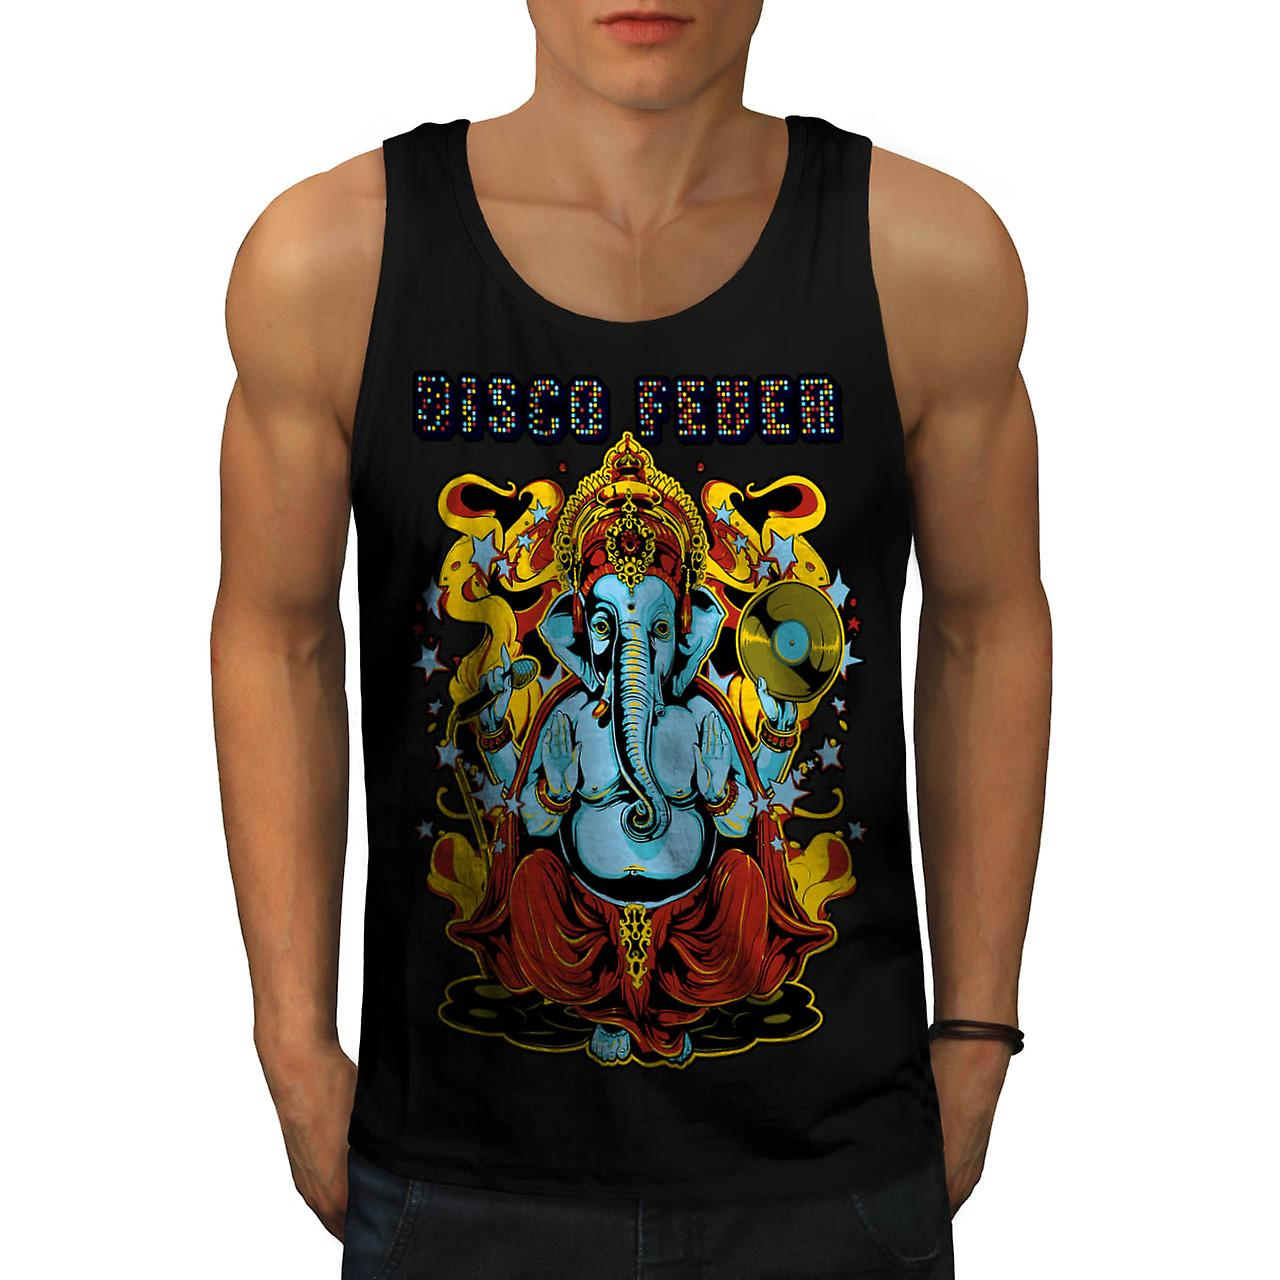 Disco Fever olifant mannen Tank Top zwart | Wellcoda